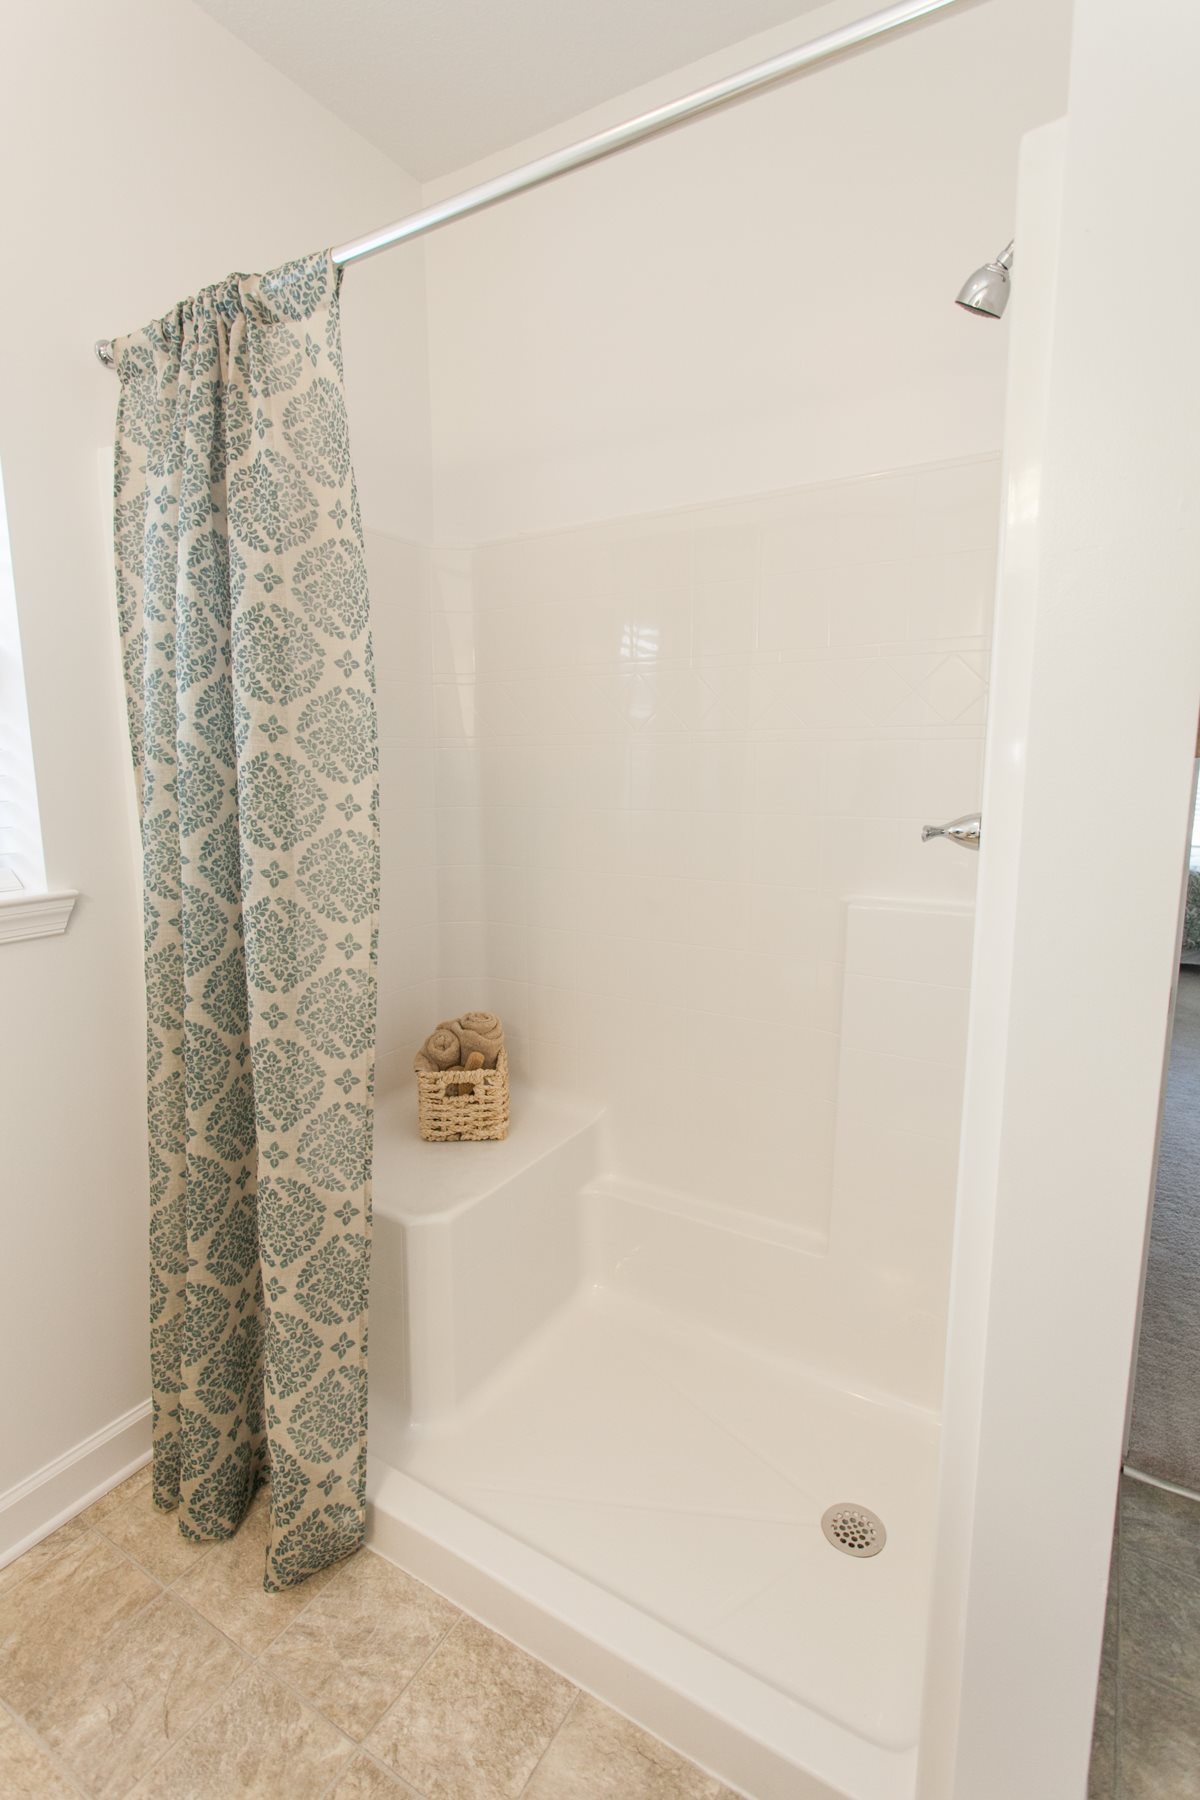 Large walk-in shower, handicap accessible